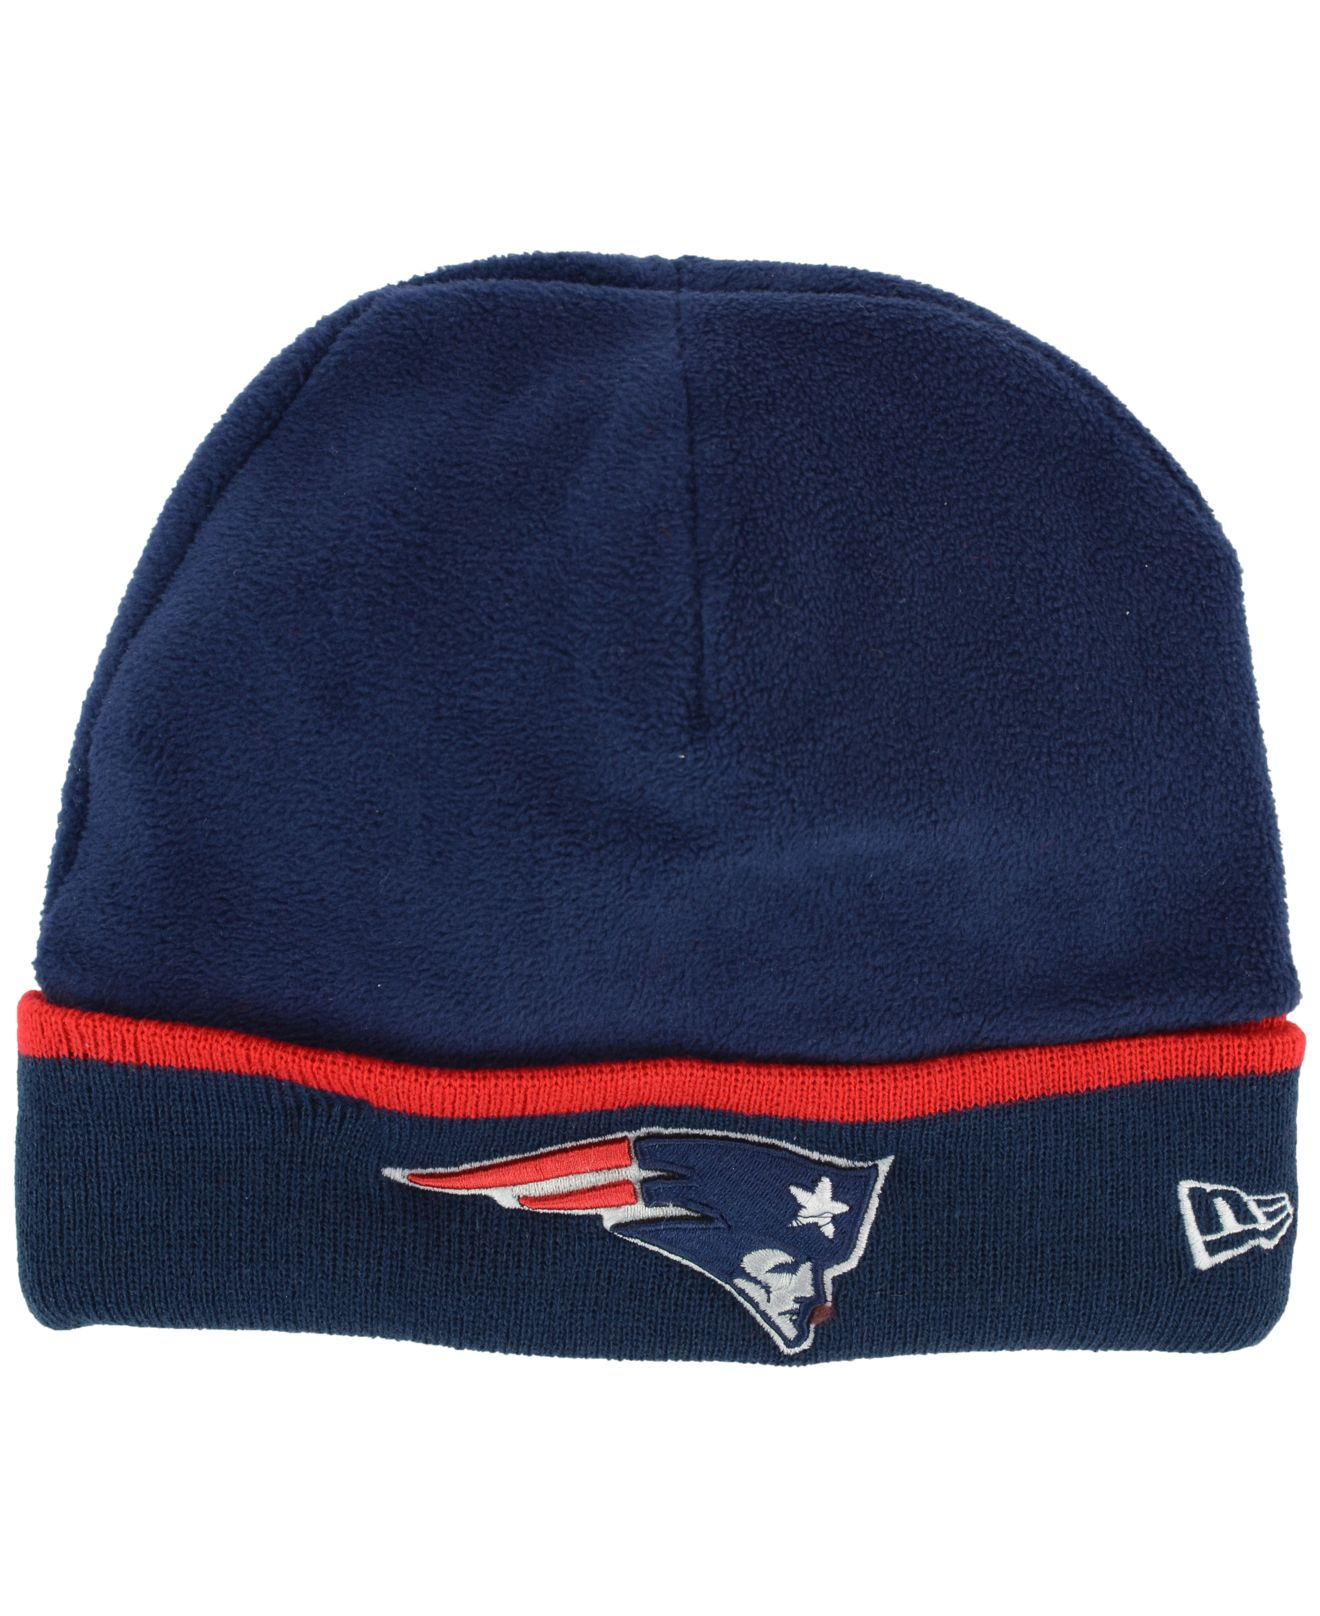 64eb1f581c18d ... hot lyst ktz new england patriots tech knit hat in blue for men 117be  ade37